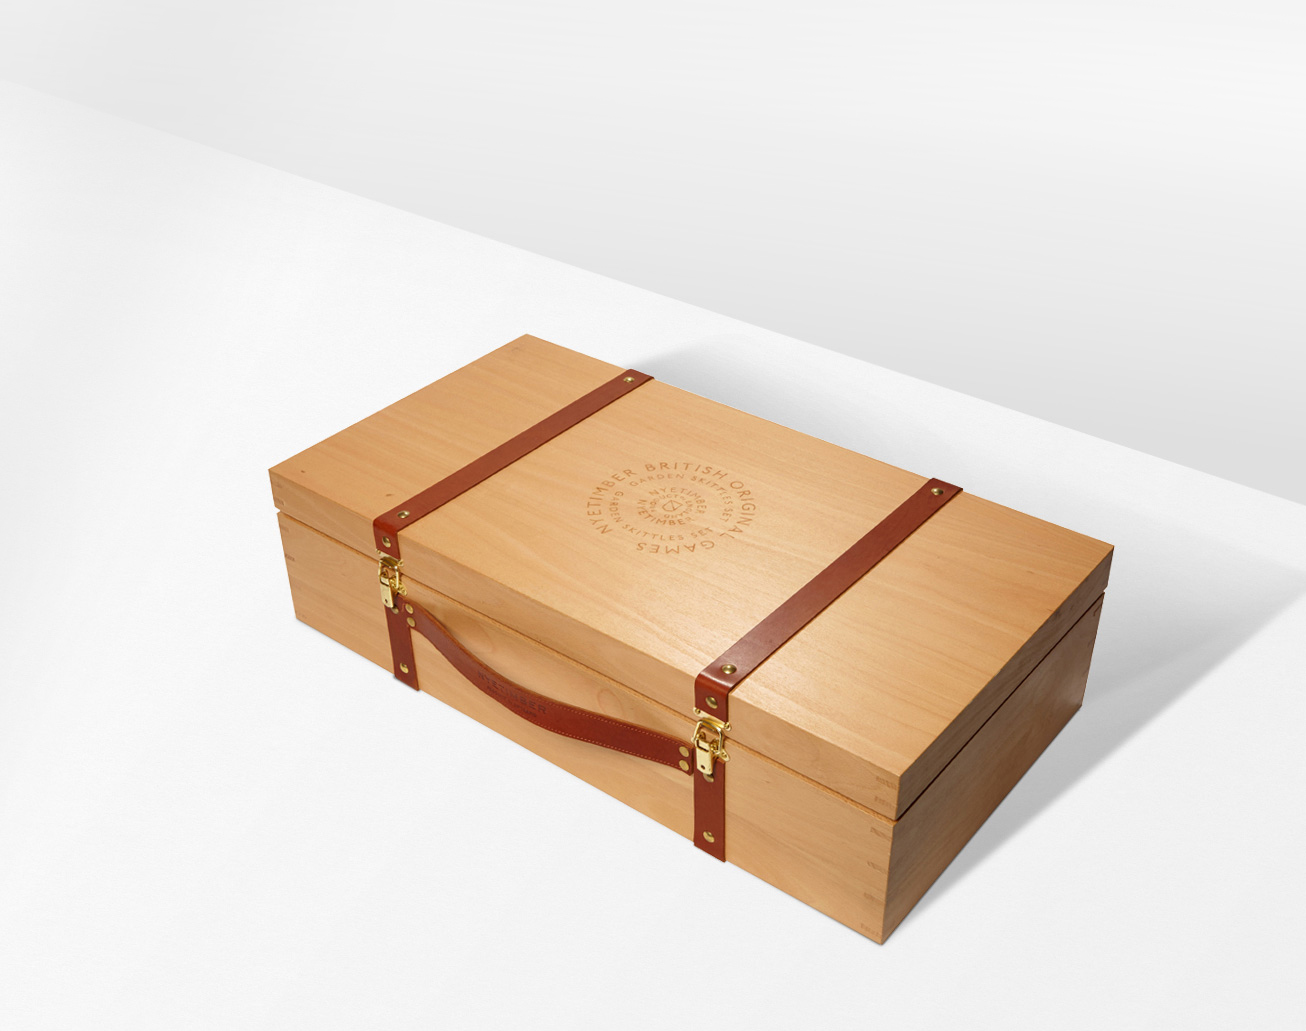 Progress Packaging Nyetimber Made Thought Luxury Boxes Drinks Closure Wood Leather